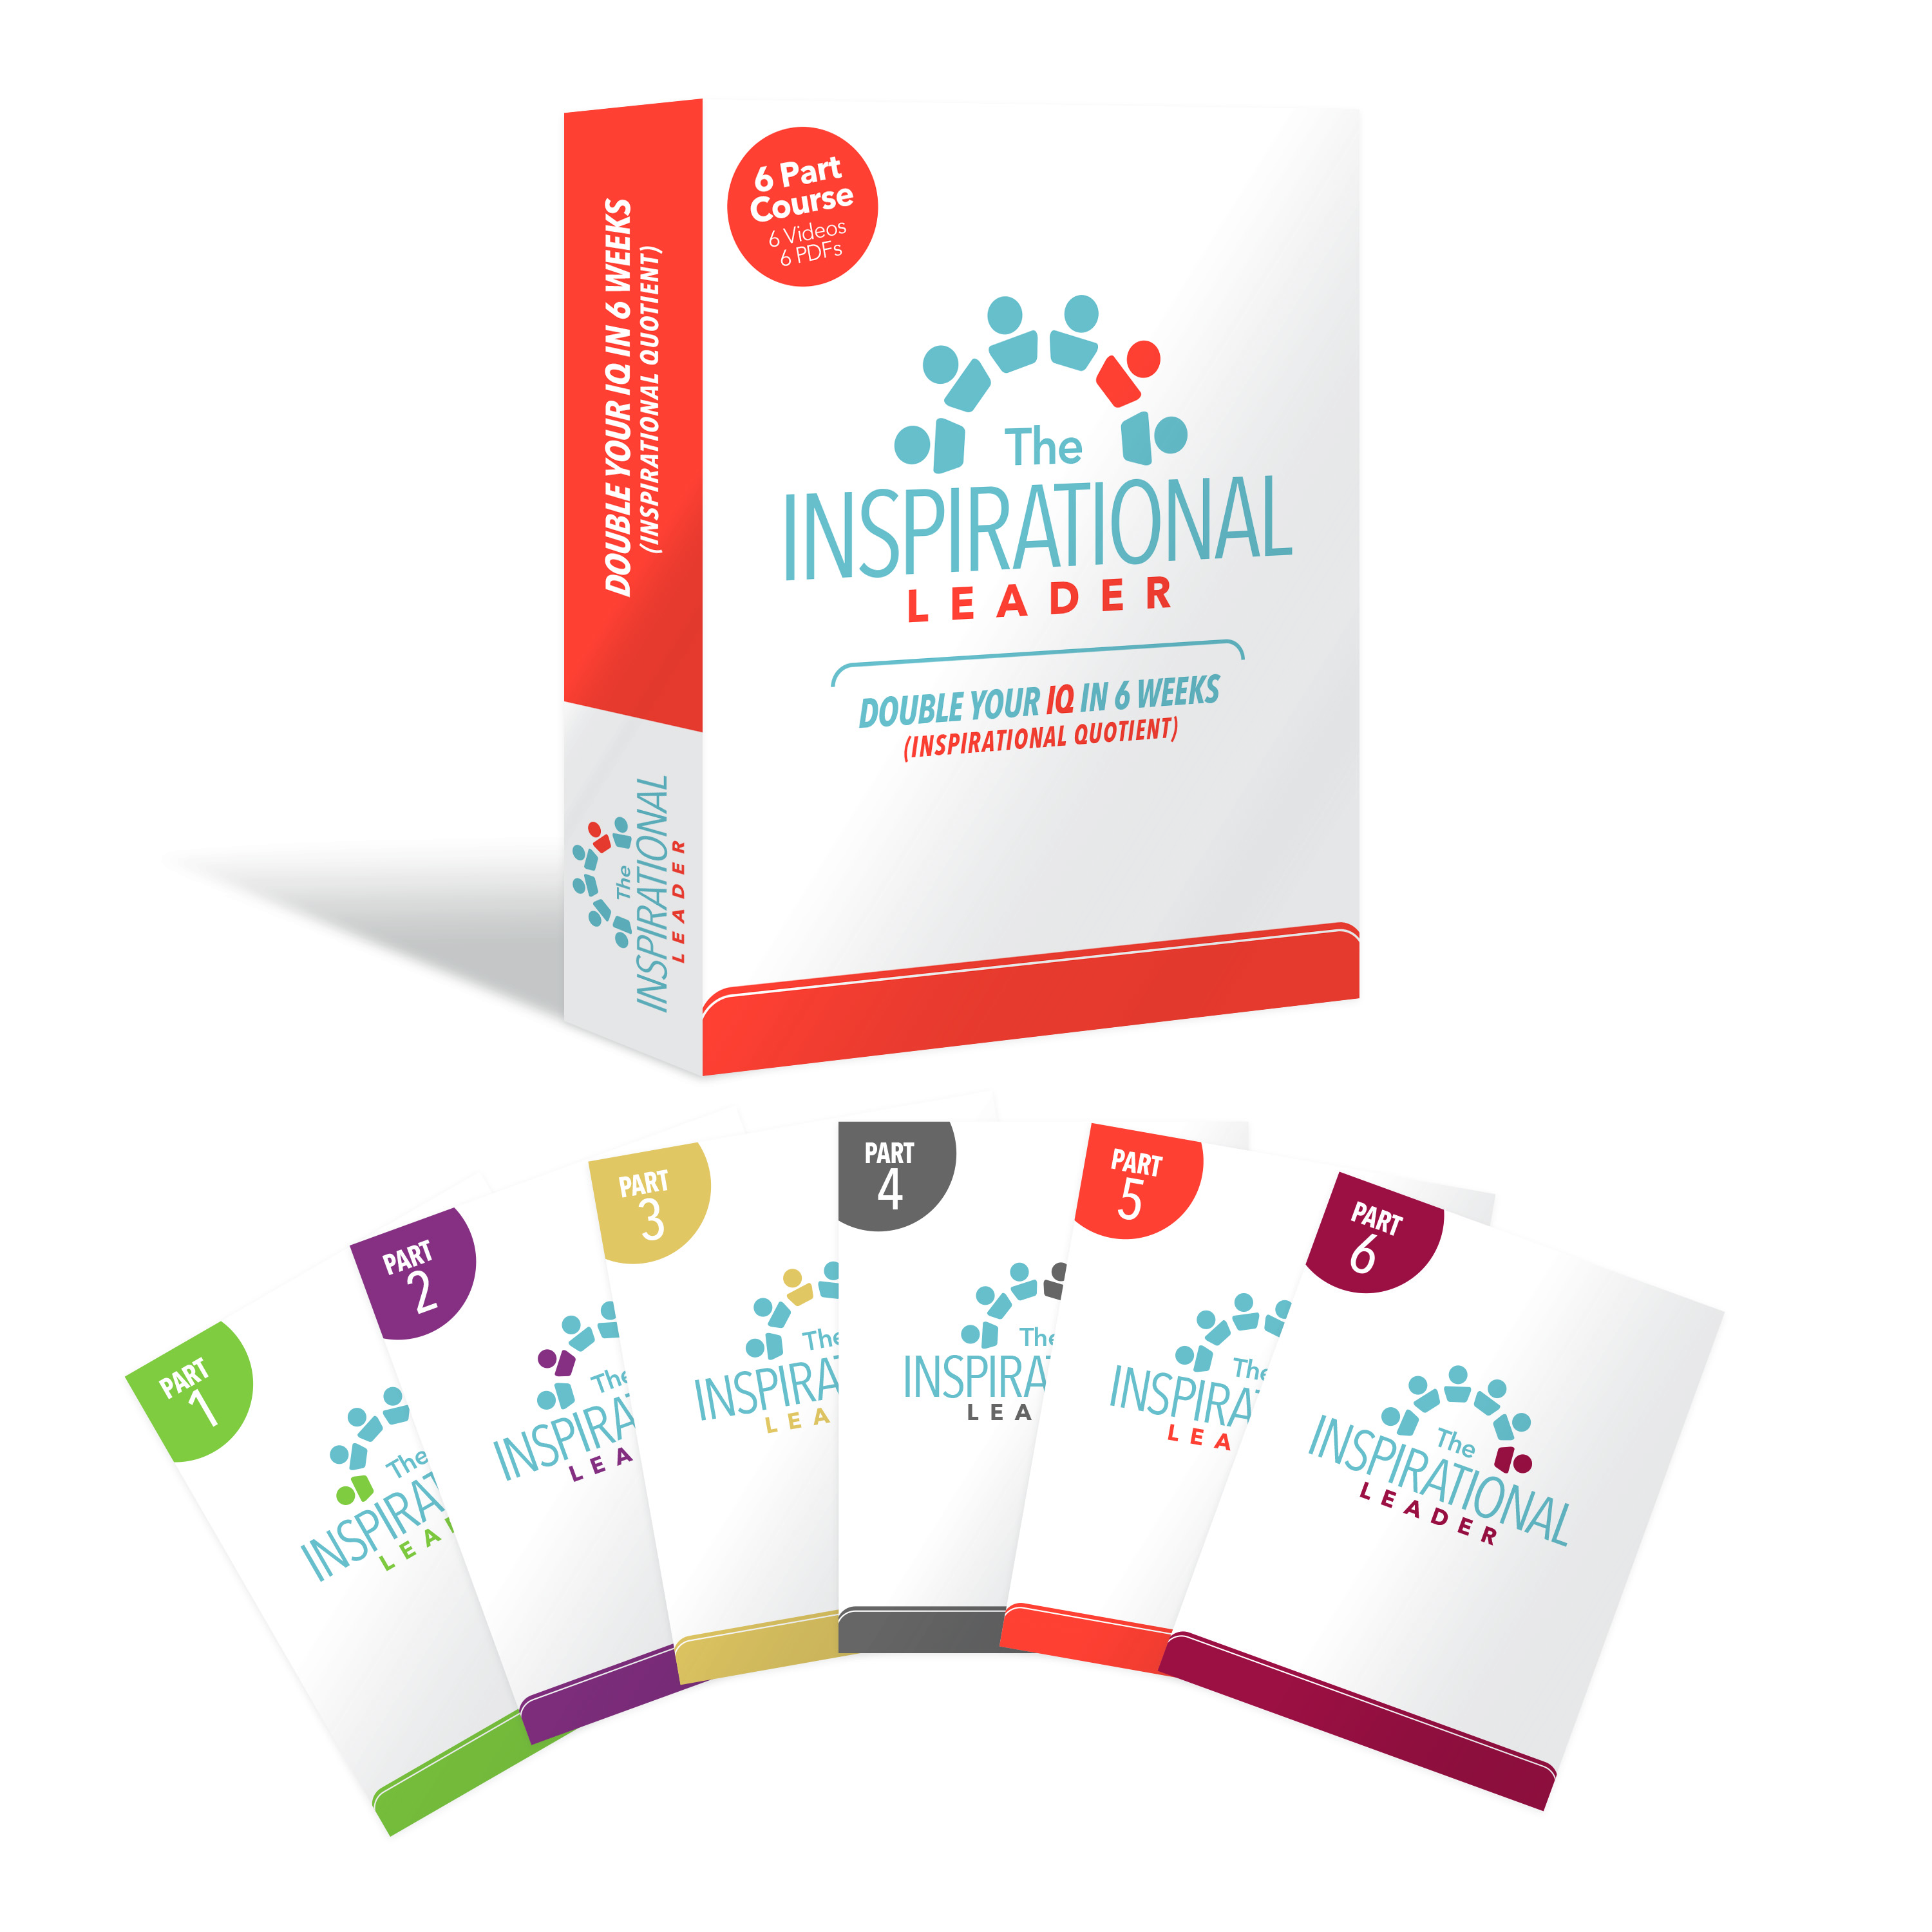 So that's 6 deep dive lessons on The 6 Paths, the Intro video, the Practice Prompts, the IQ Test, the Workbook, 5 Bonuses, and the In-Touch Leader Bonus Package, all for $697.